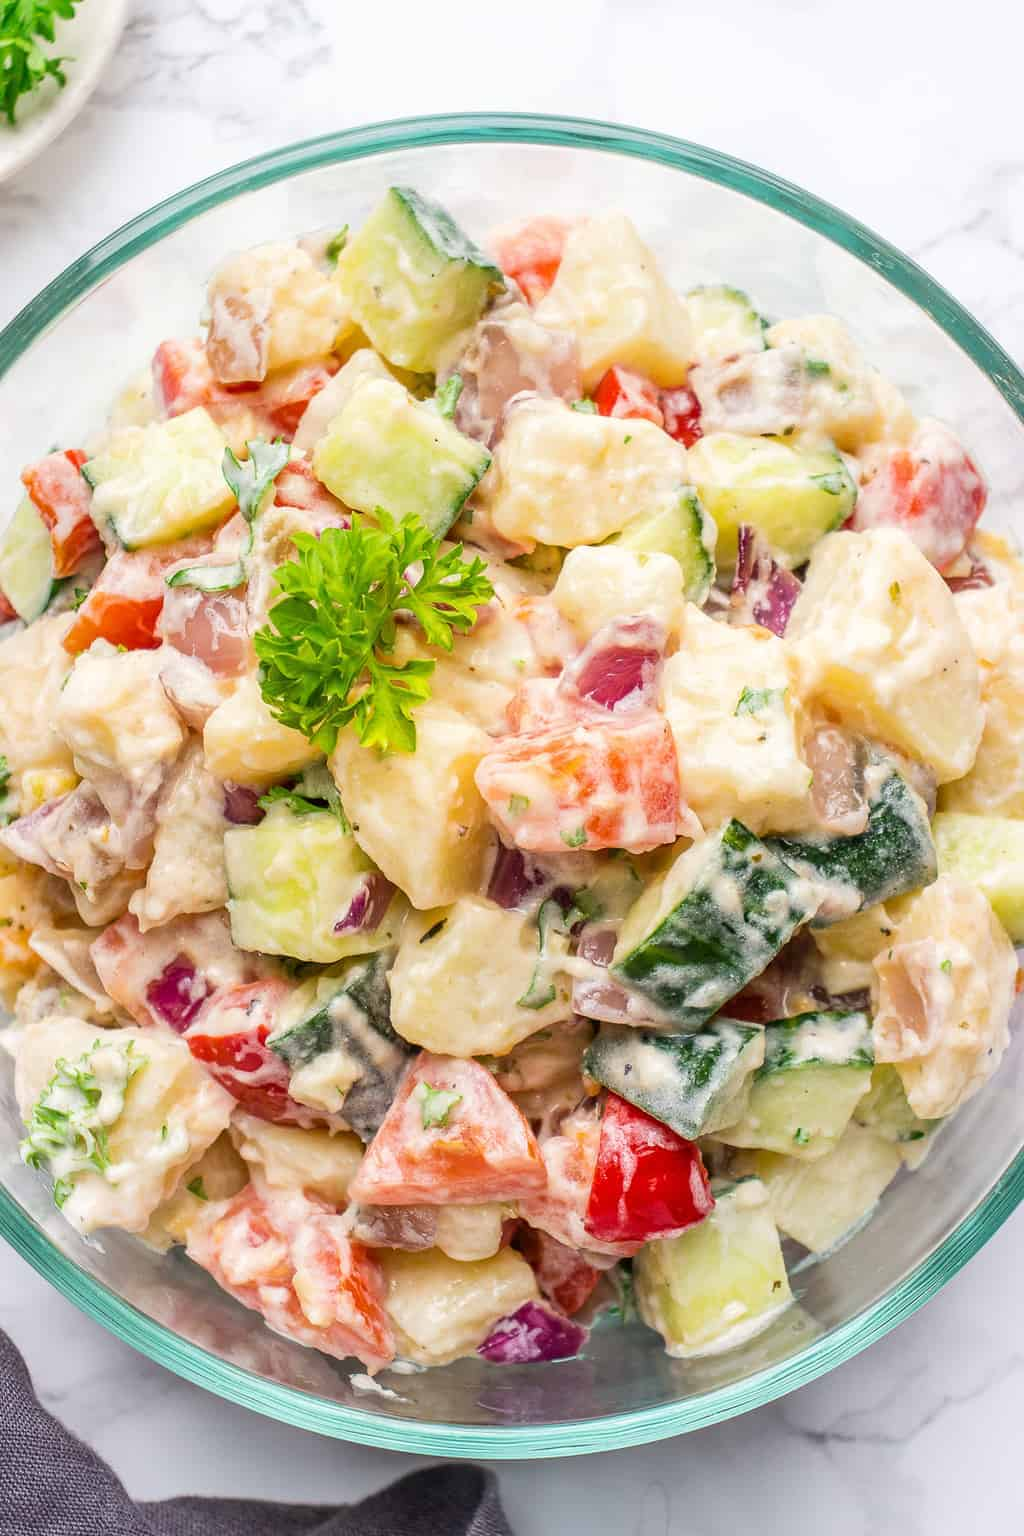 Photo of a healthy vegan potato salad in a bowl